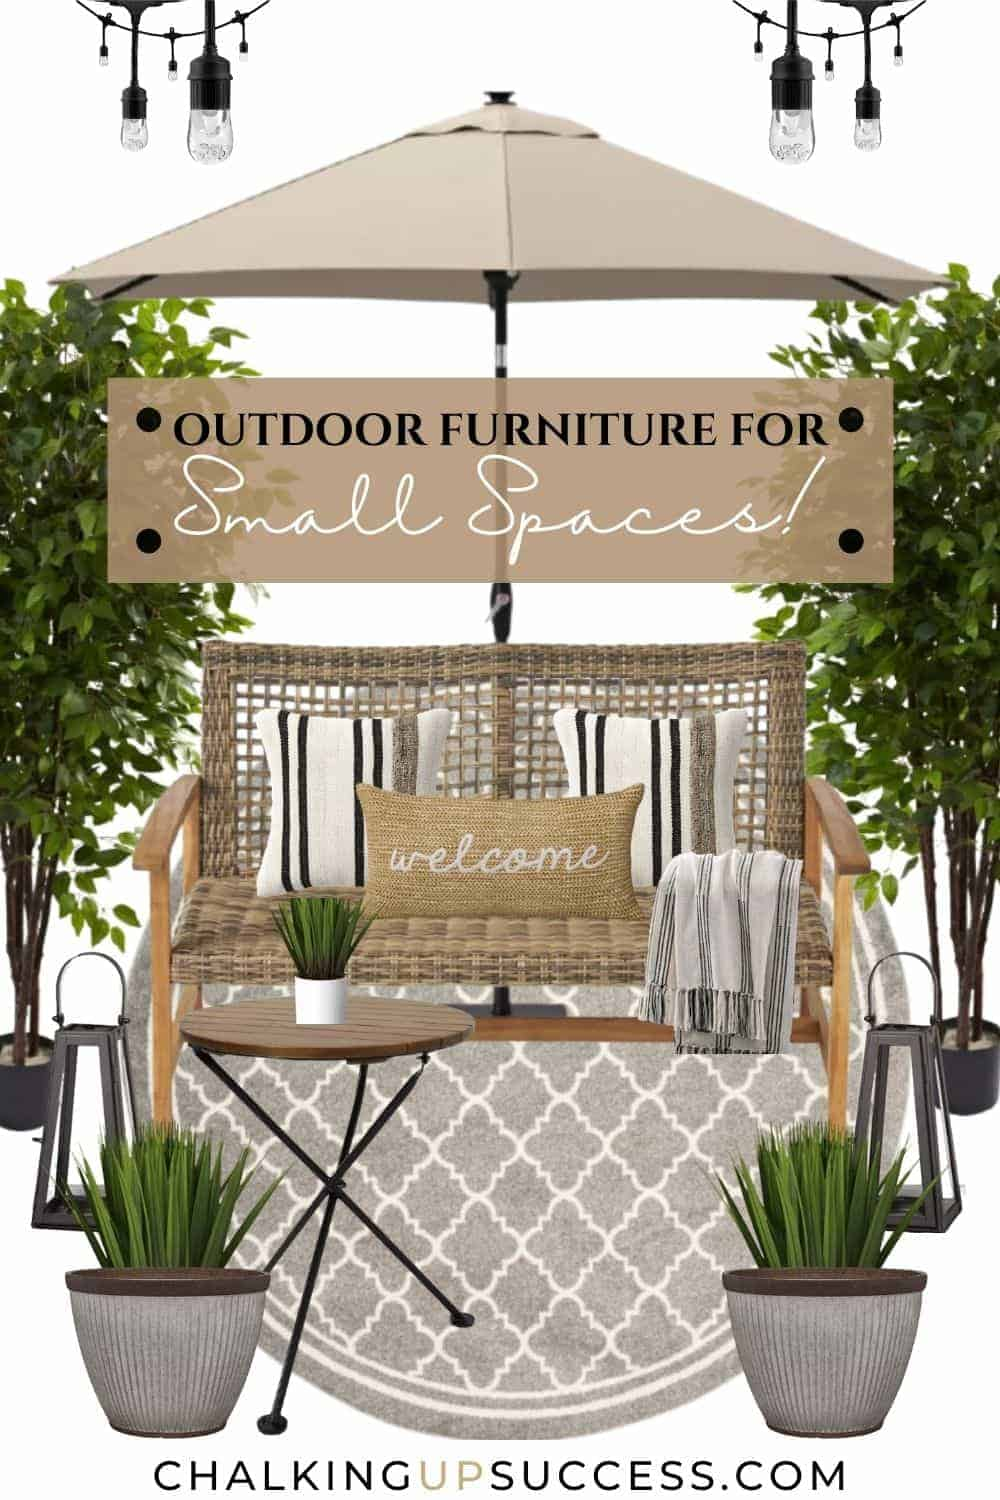 This outdoor furniture for small spaces includes a low-back loose weave wicker loveseat on a round beige rug in geometric (damask) design. Over the loveseat is a beige sun umbrella. The loveseat is surounded by plants and lanterns.